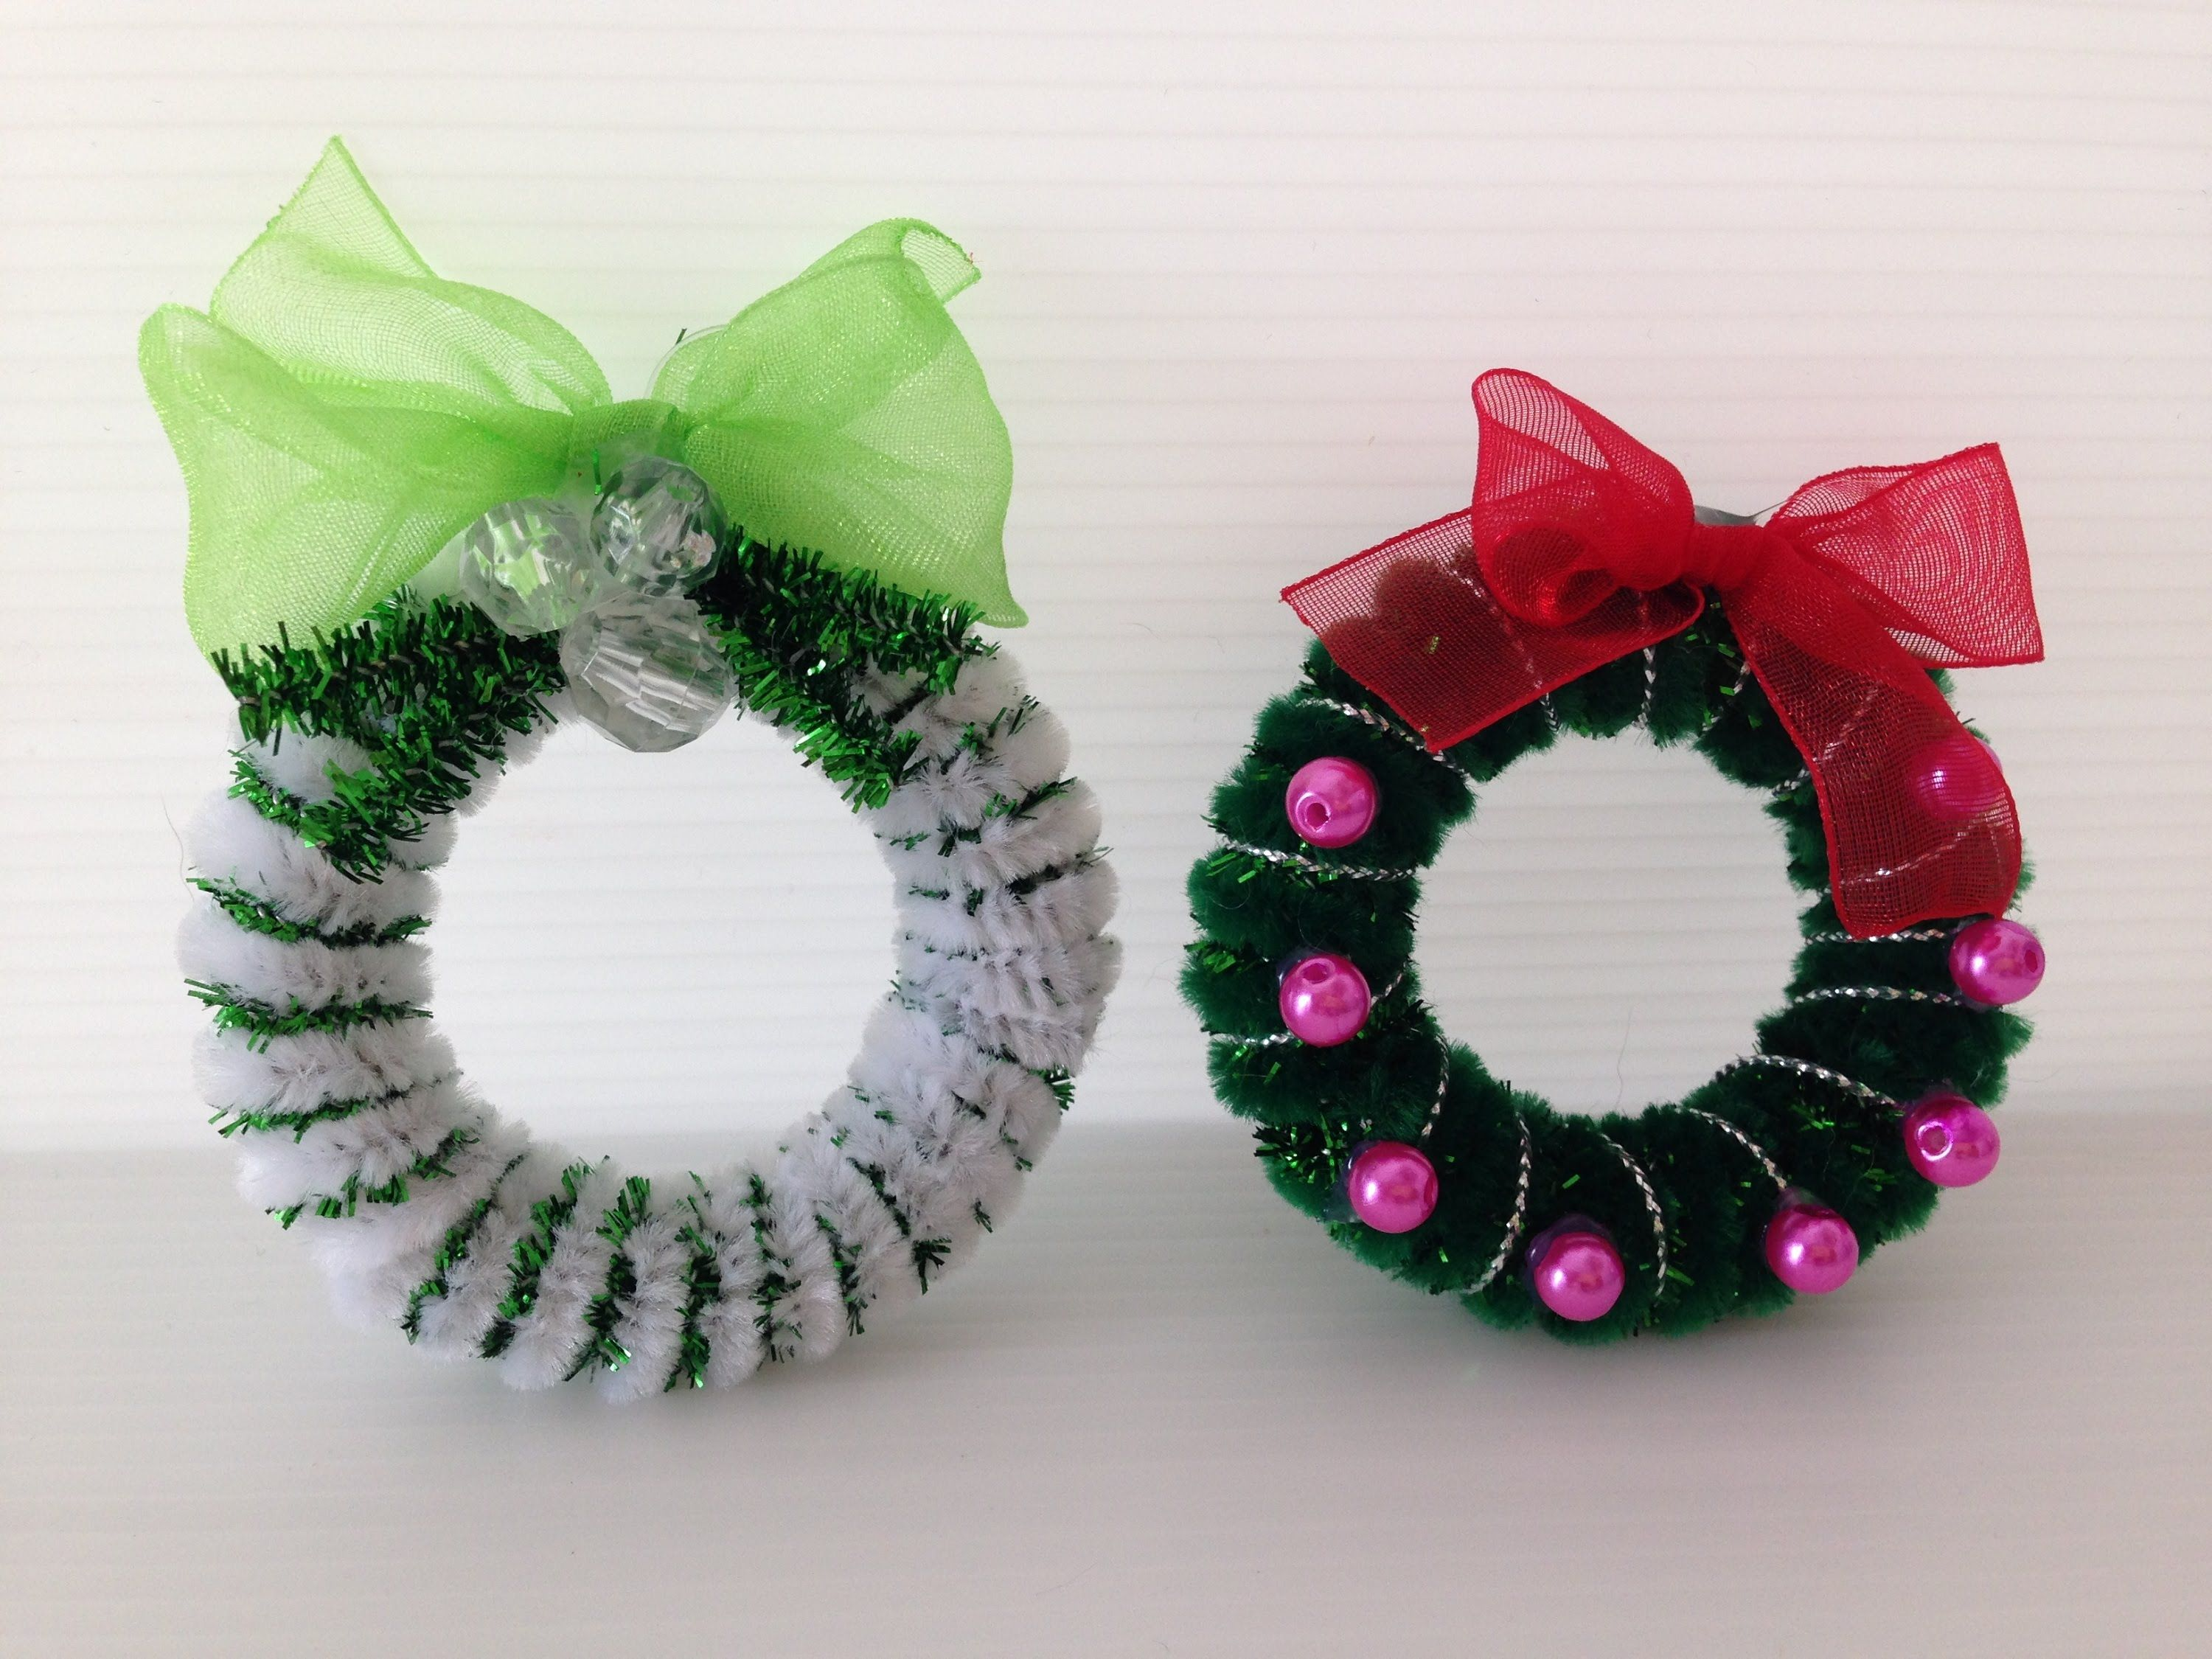 Pipe cleaners for crafts - Diy Pipe Cleaner Christmas Wreath New